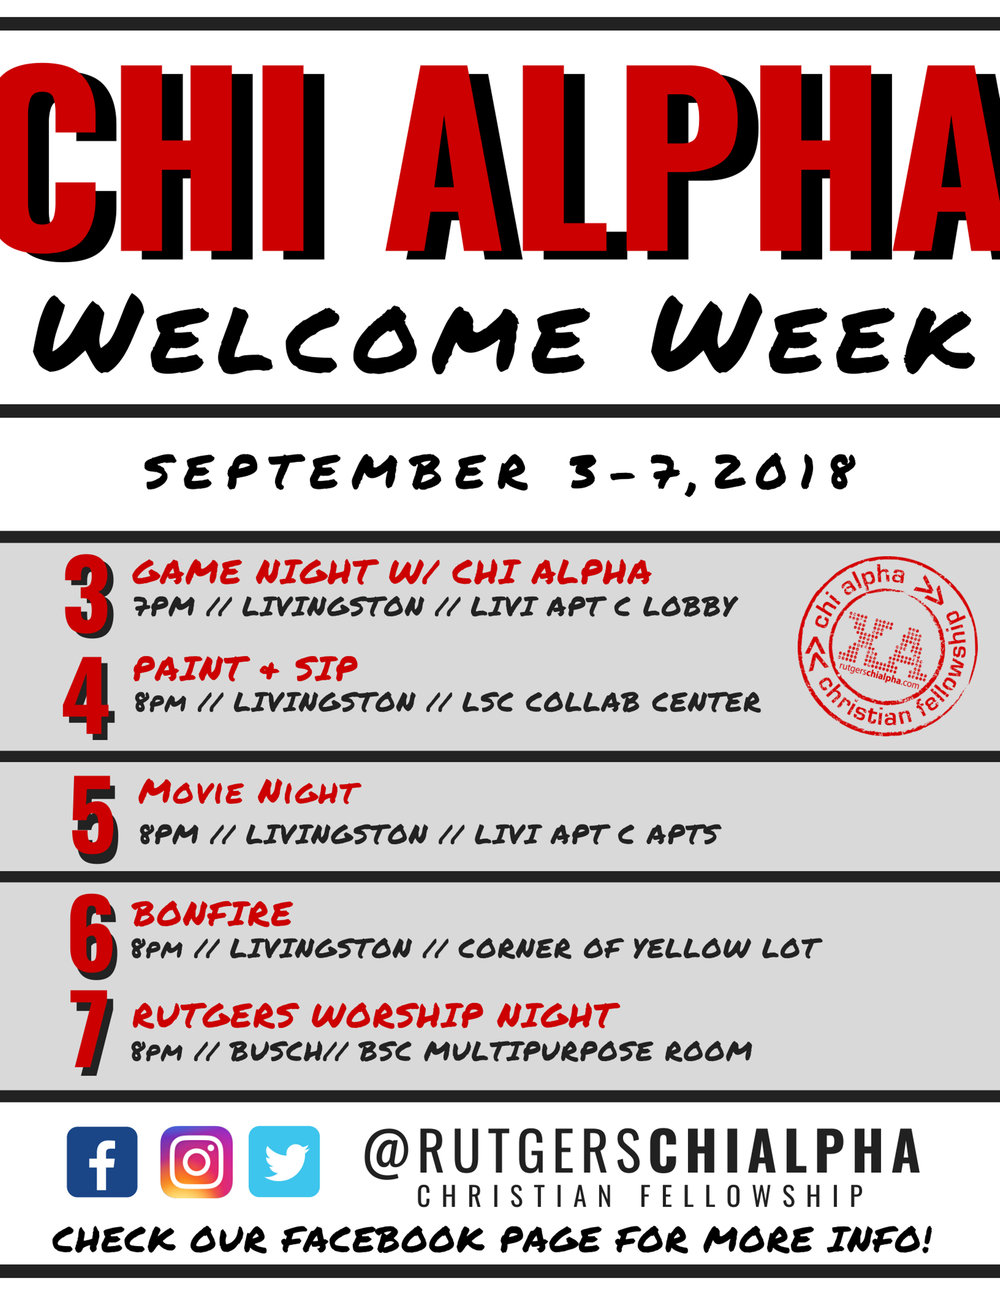 WELCOME WEEK 2018 (1).jpg